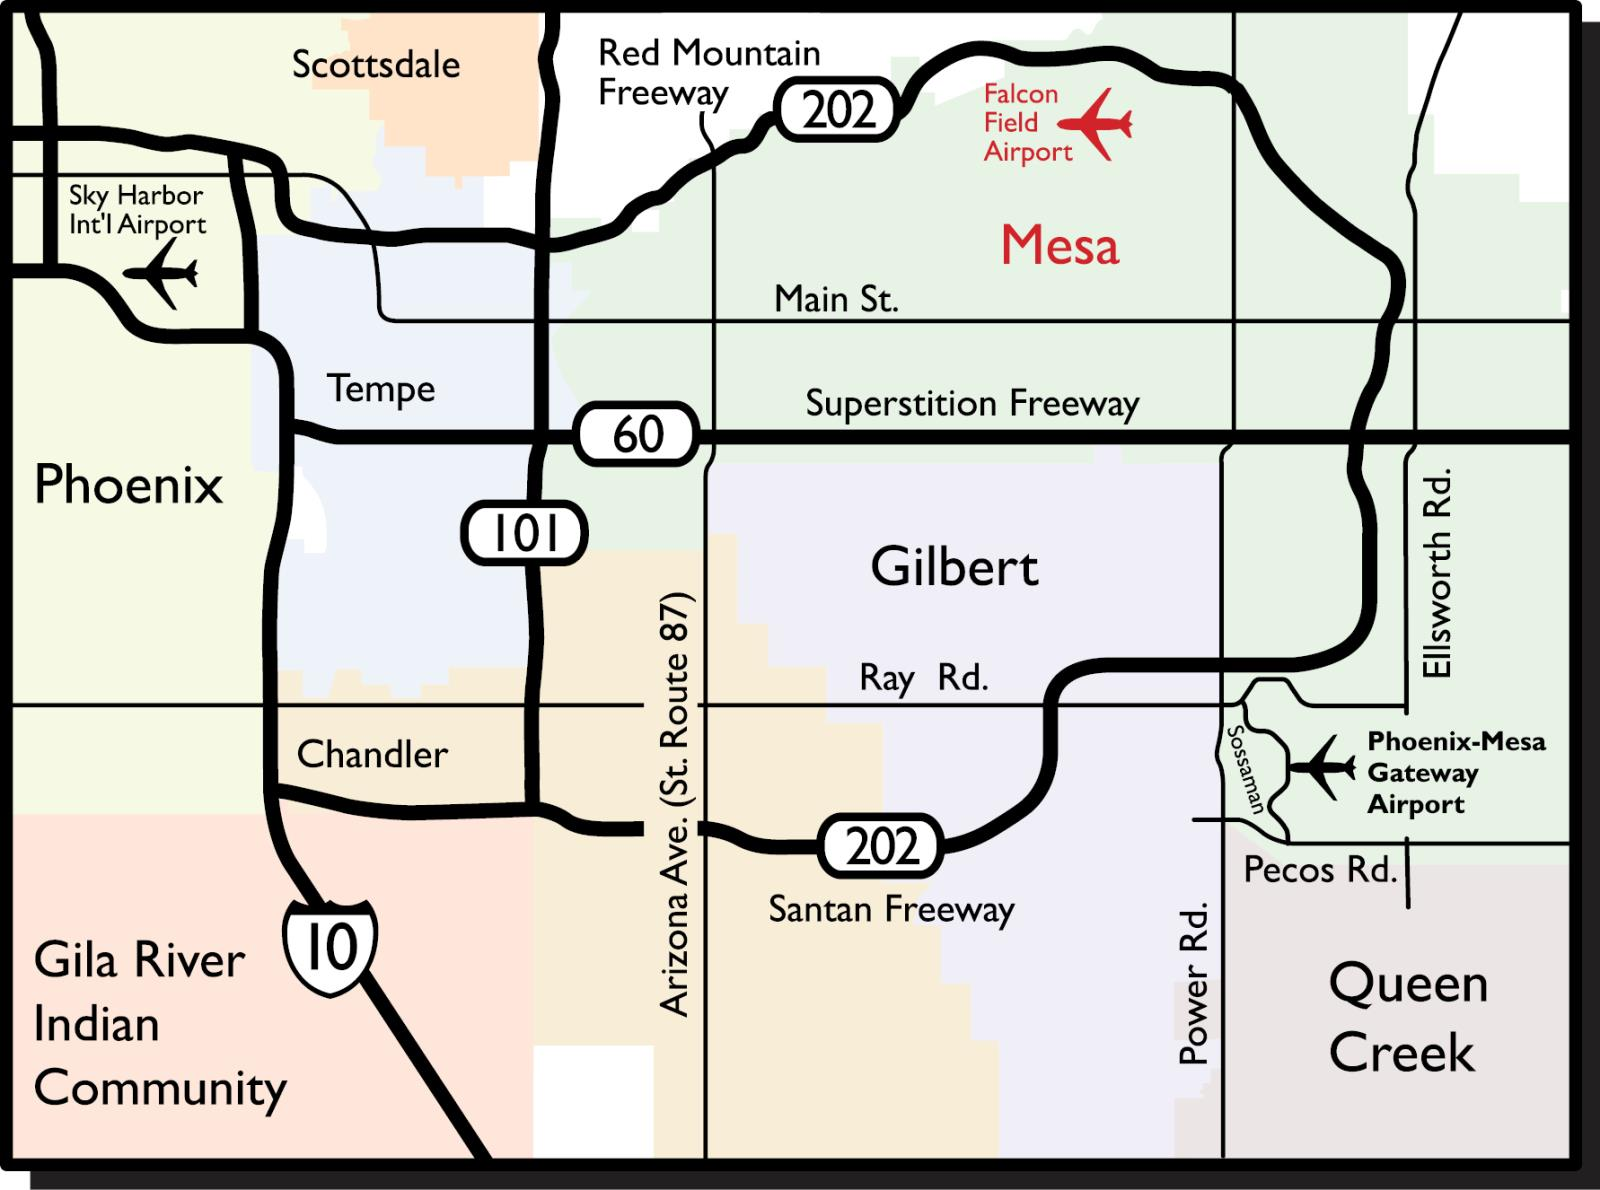 Maps & Directions | Falcon Field Airport